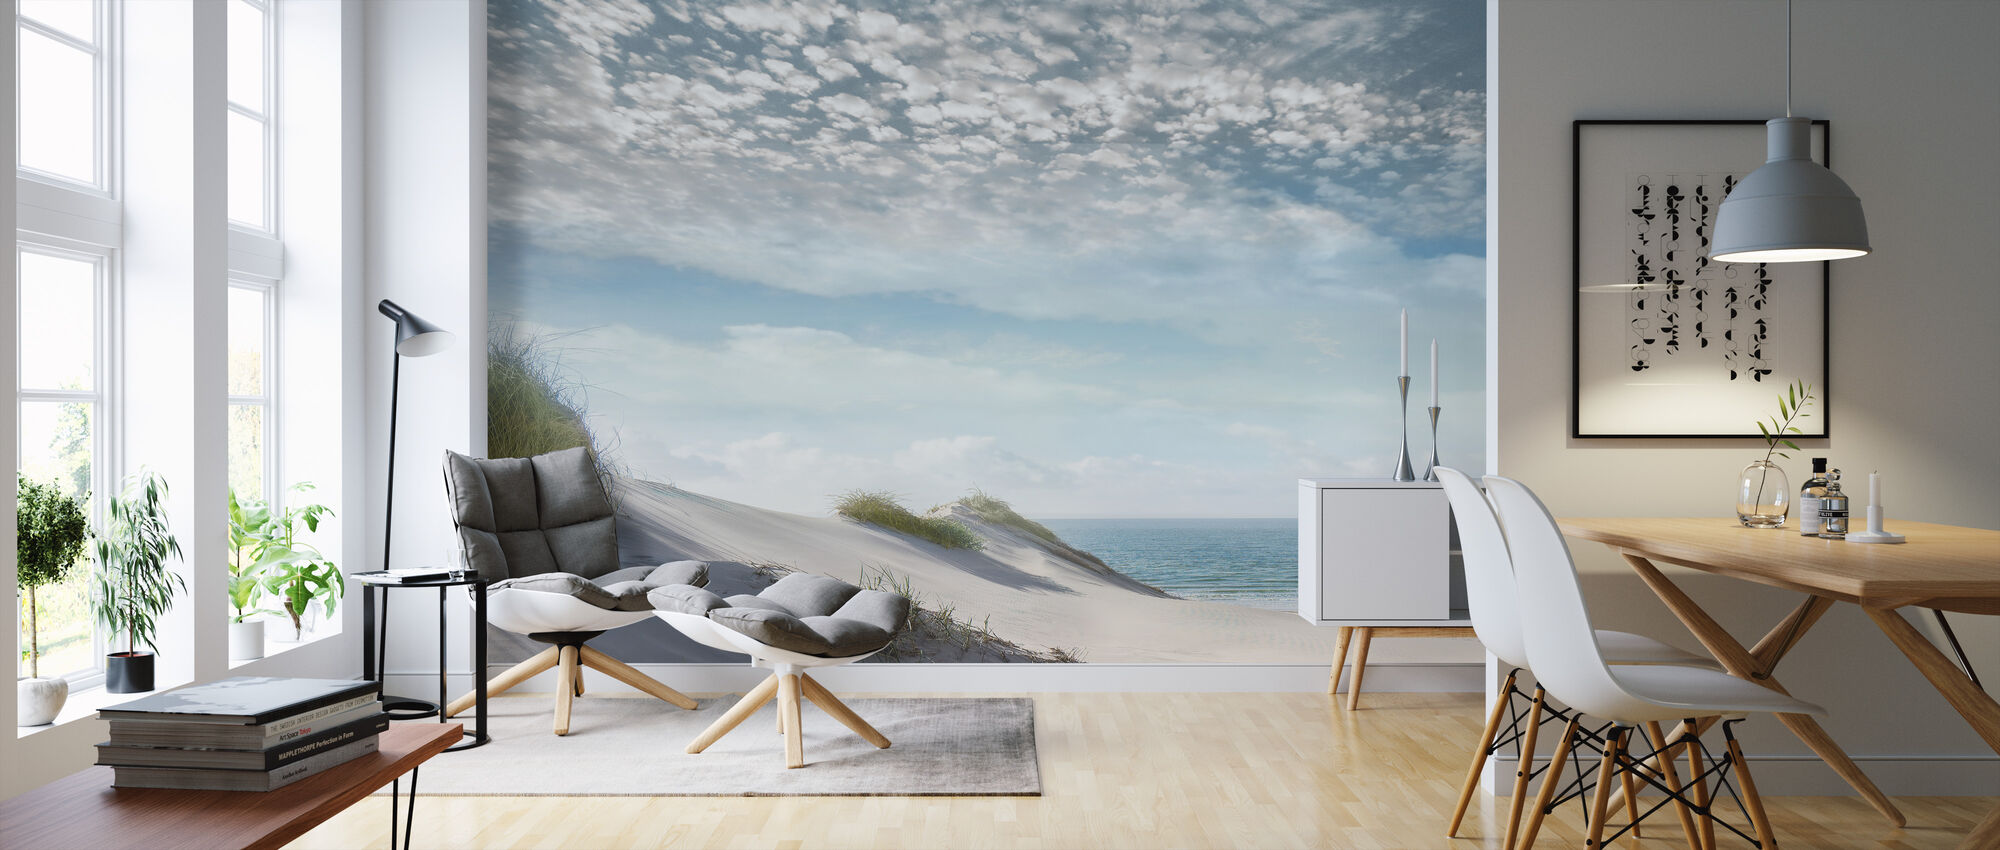 Thin Clouds - Wallpaper - Living Room